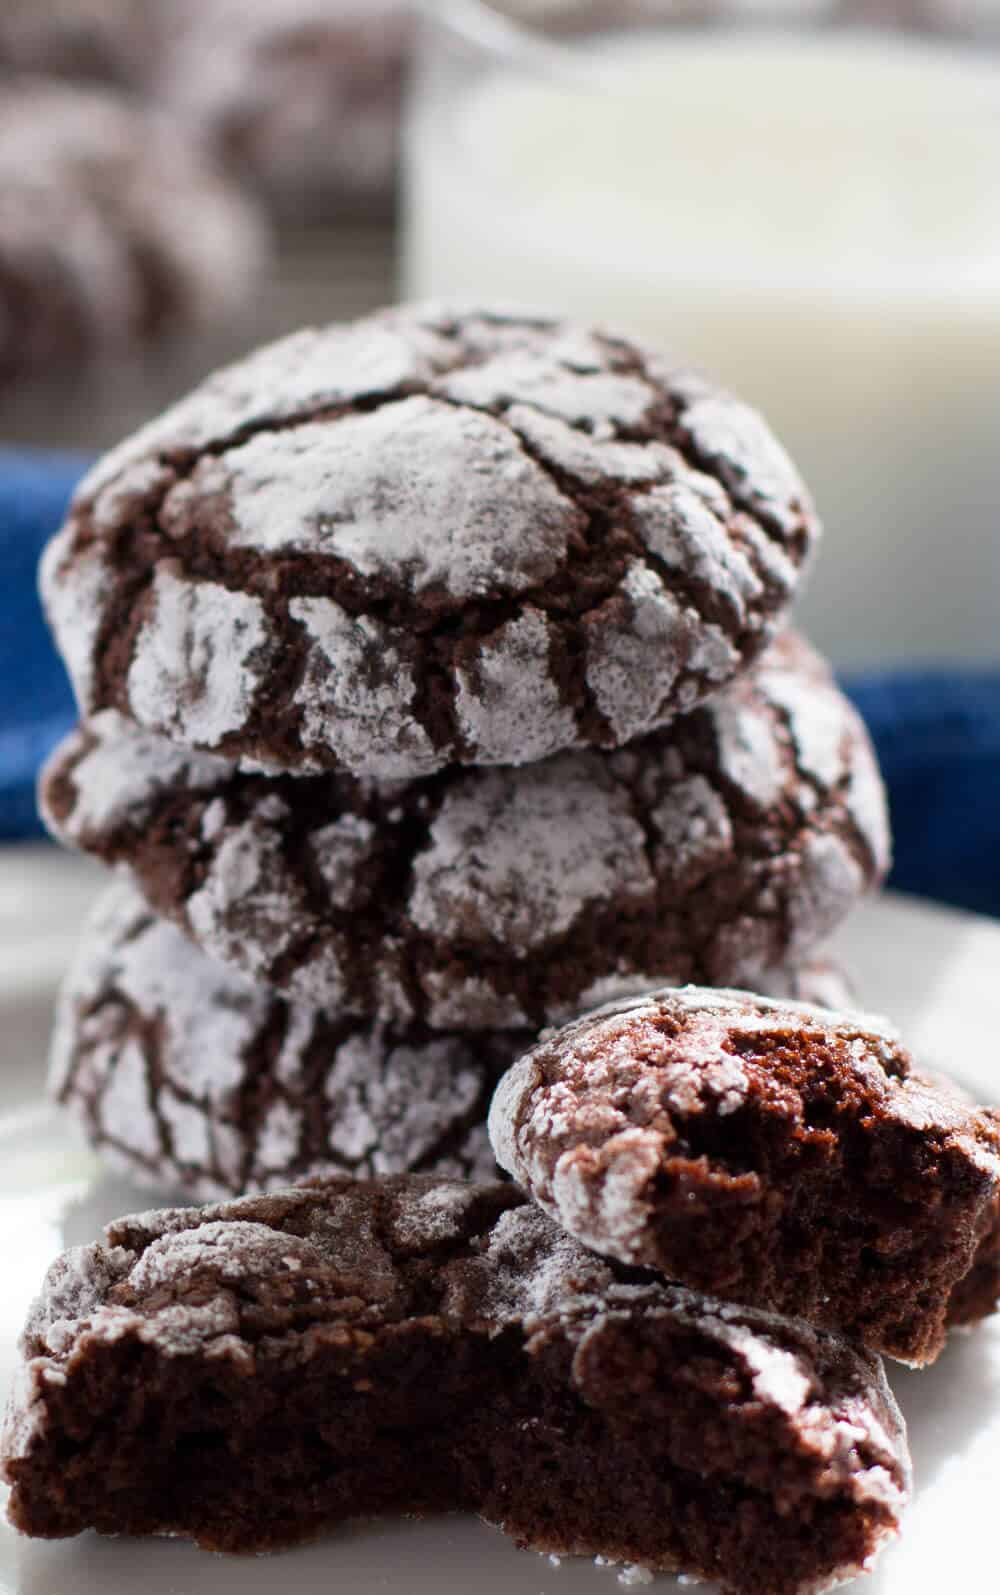 Fudgy Crackled Chocolate Cookies ready to be eaten with a glass of milk | Mother Would Know